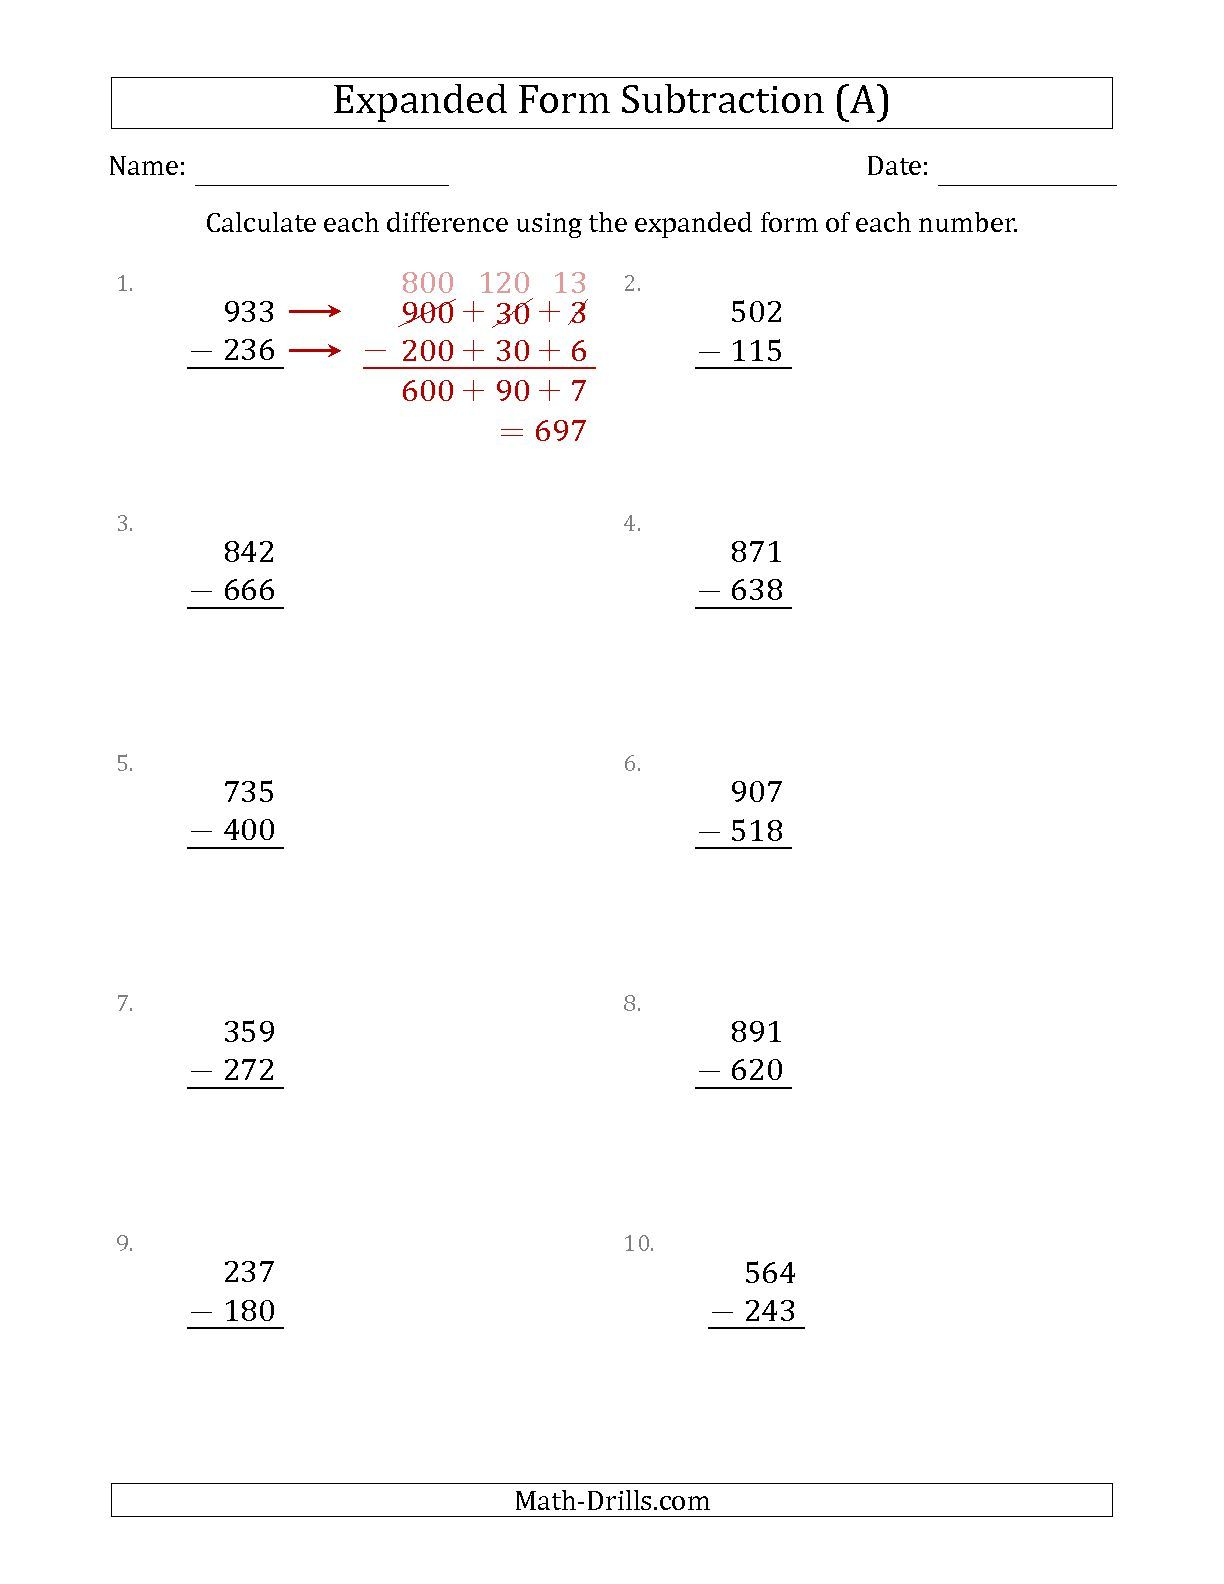 The 3 Digit Expanded Form Subtraction A Math Worksheet From The Subtraction Worksheets Page At